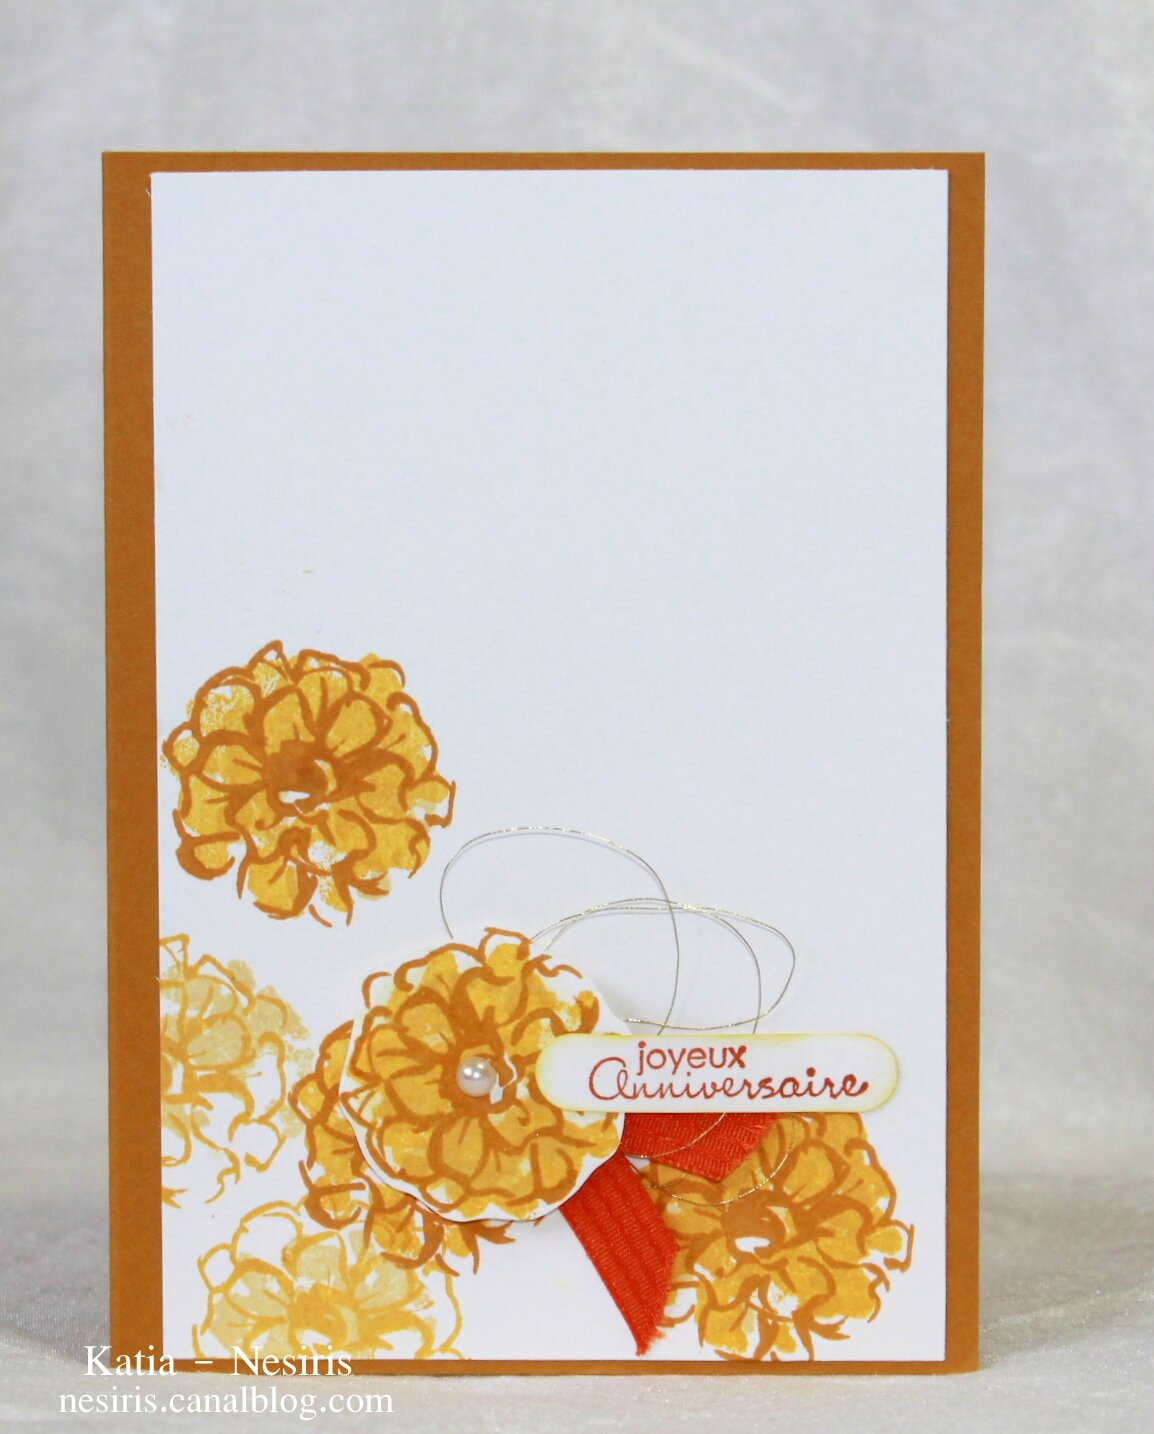 Carte Wink of stella - pinceau paillettes - katia nesiris démonstratrice Stampin'up2